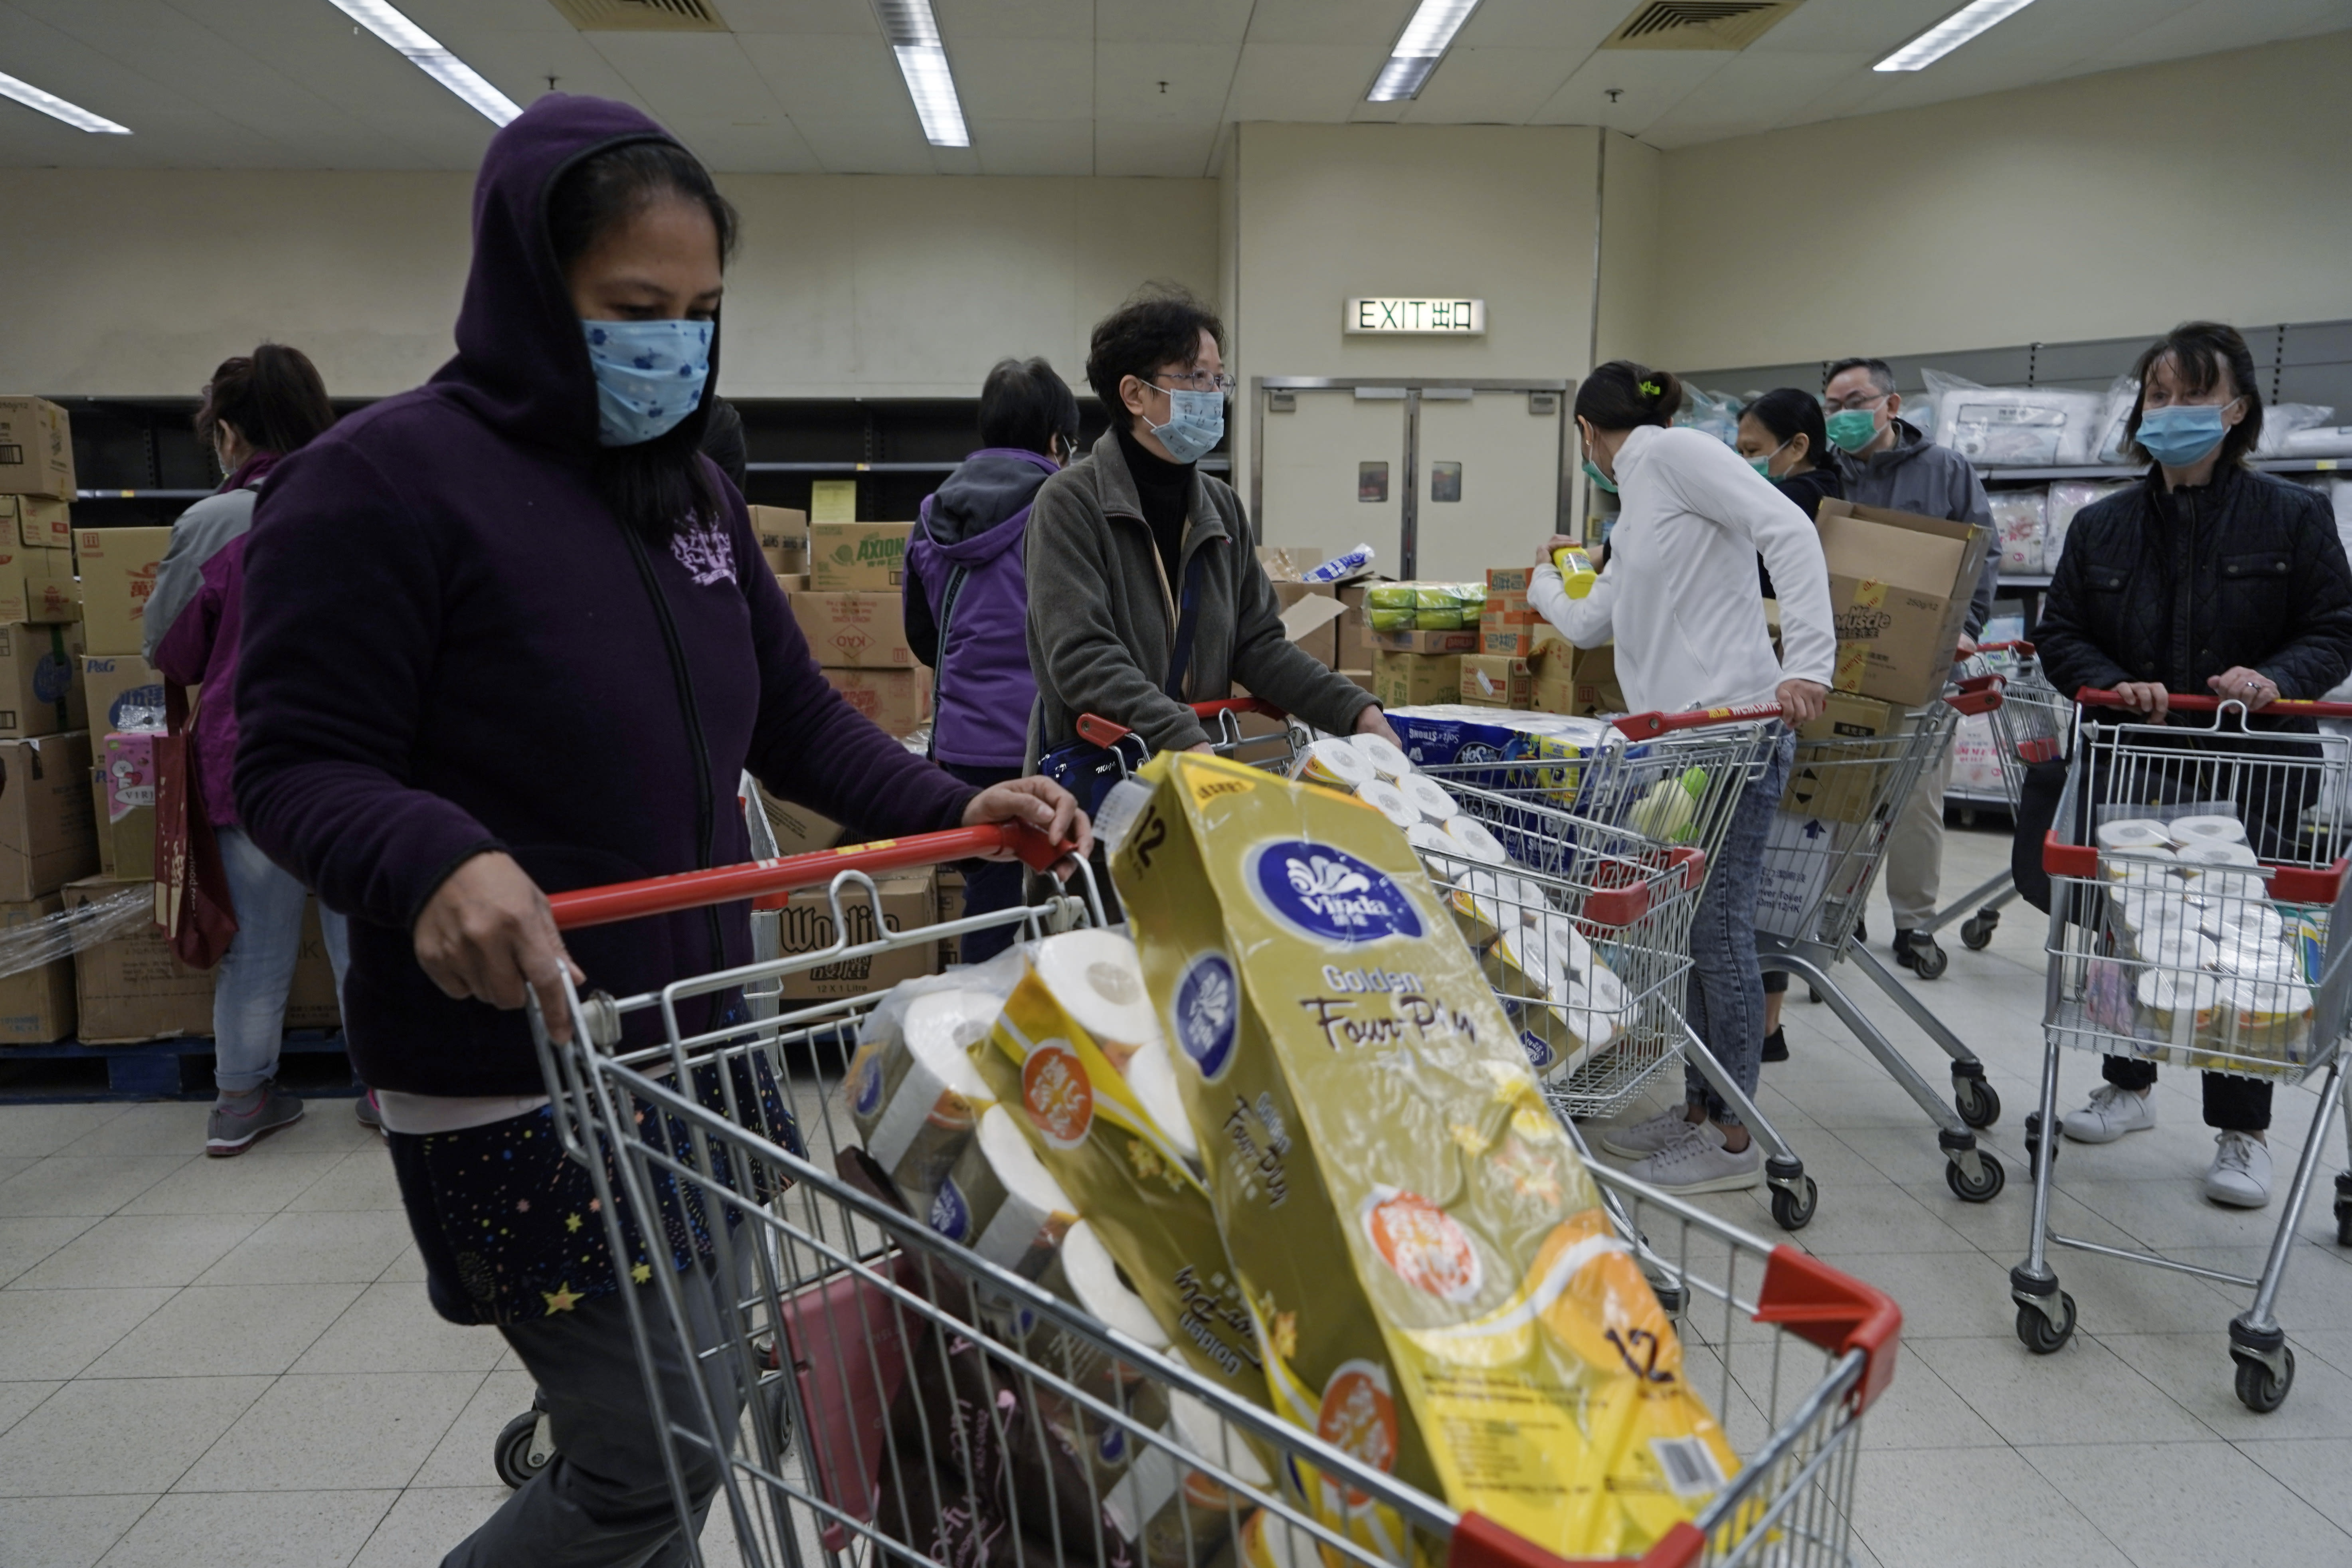 Customers wearing masks, purchase tissue papers in a supermarket in Hong Kong, Saturday, Feb. 8, 2020. Widespread panic-buying of essentials such as toilet rolls and rice has hit in Hong Kong, a knock-on effect of the virus outbreak in mainland China. (AP Photo/Kin Cheung)